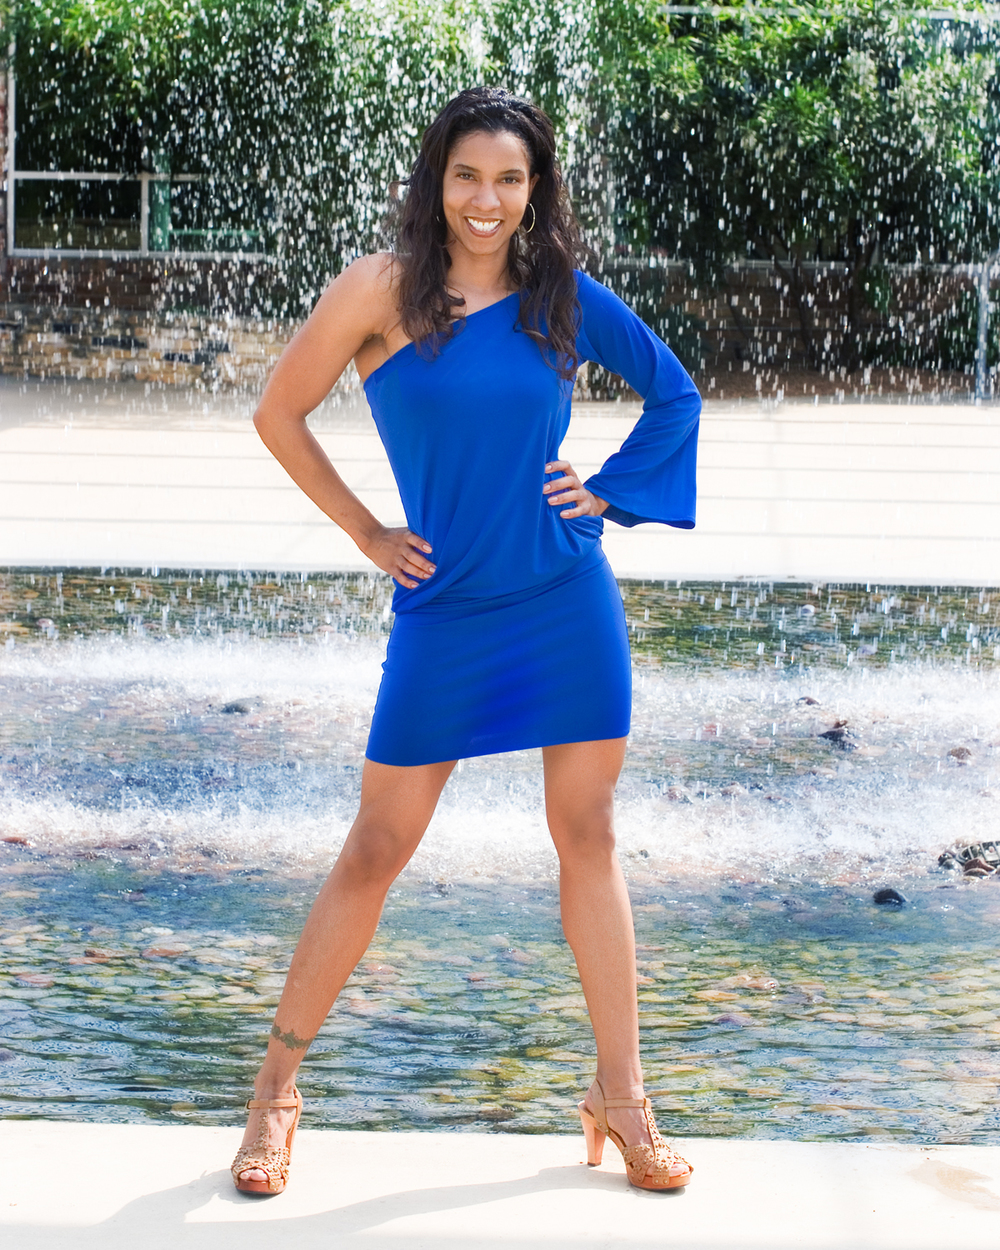 Misty Necol Duckworth - Personal Trainer, AFAA; Group Fitness Instructor, AFPA